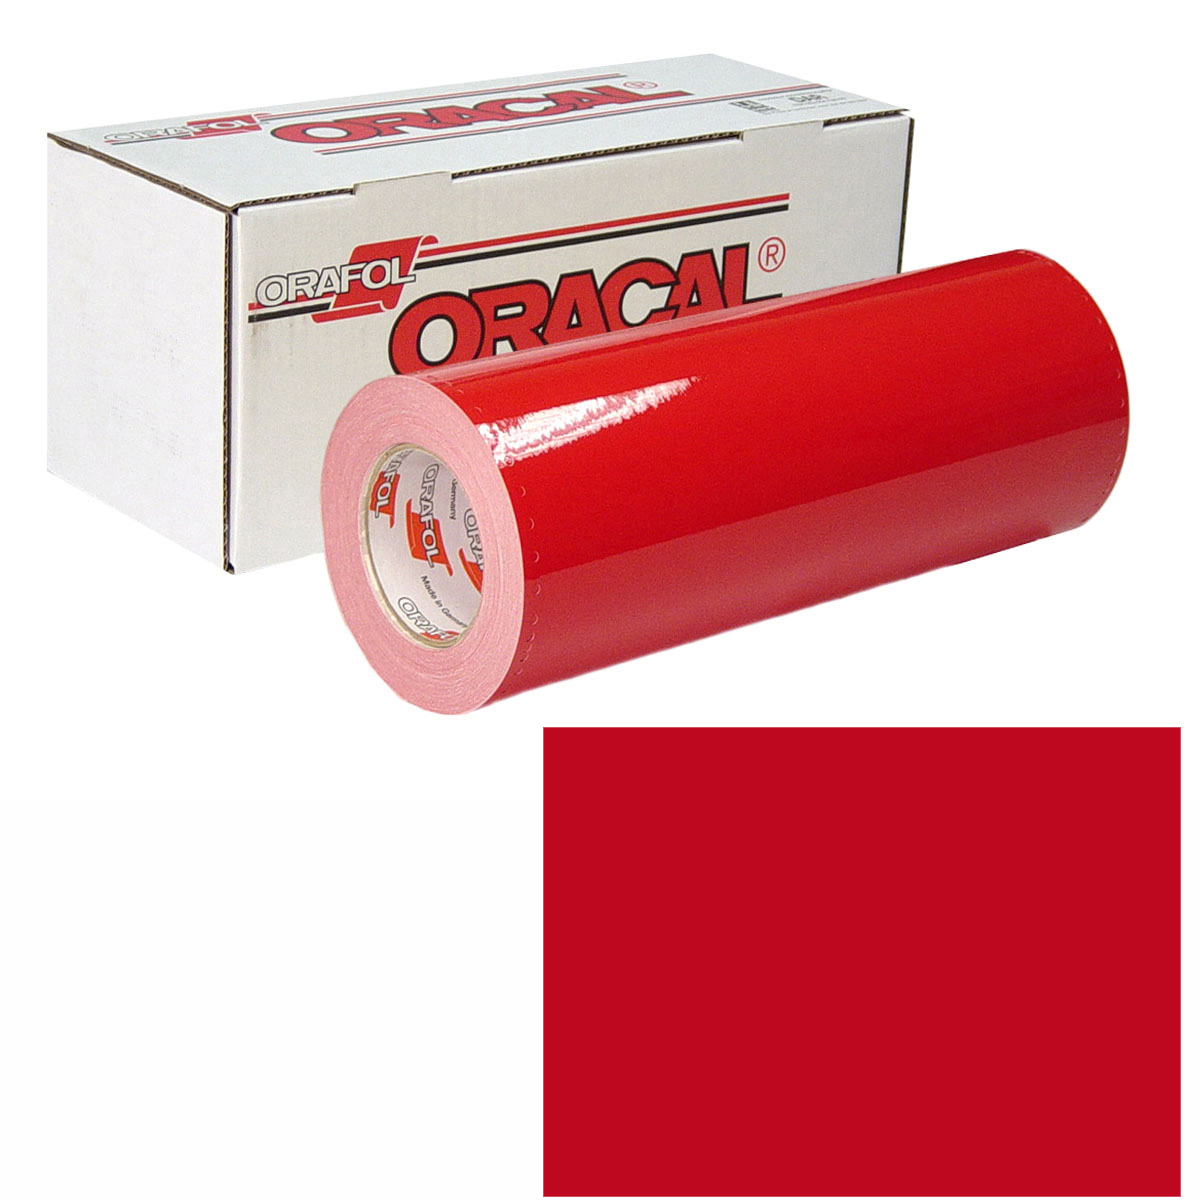 ORACAL 951 15in X 10yd 028 Cardinal Red